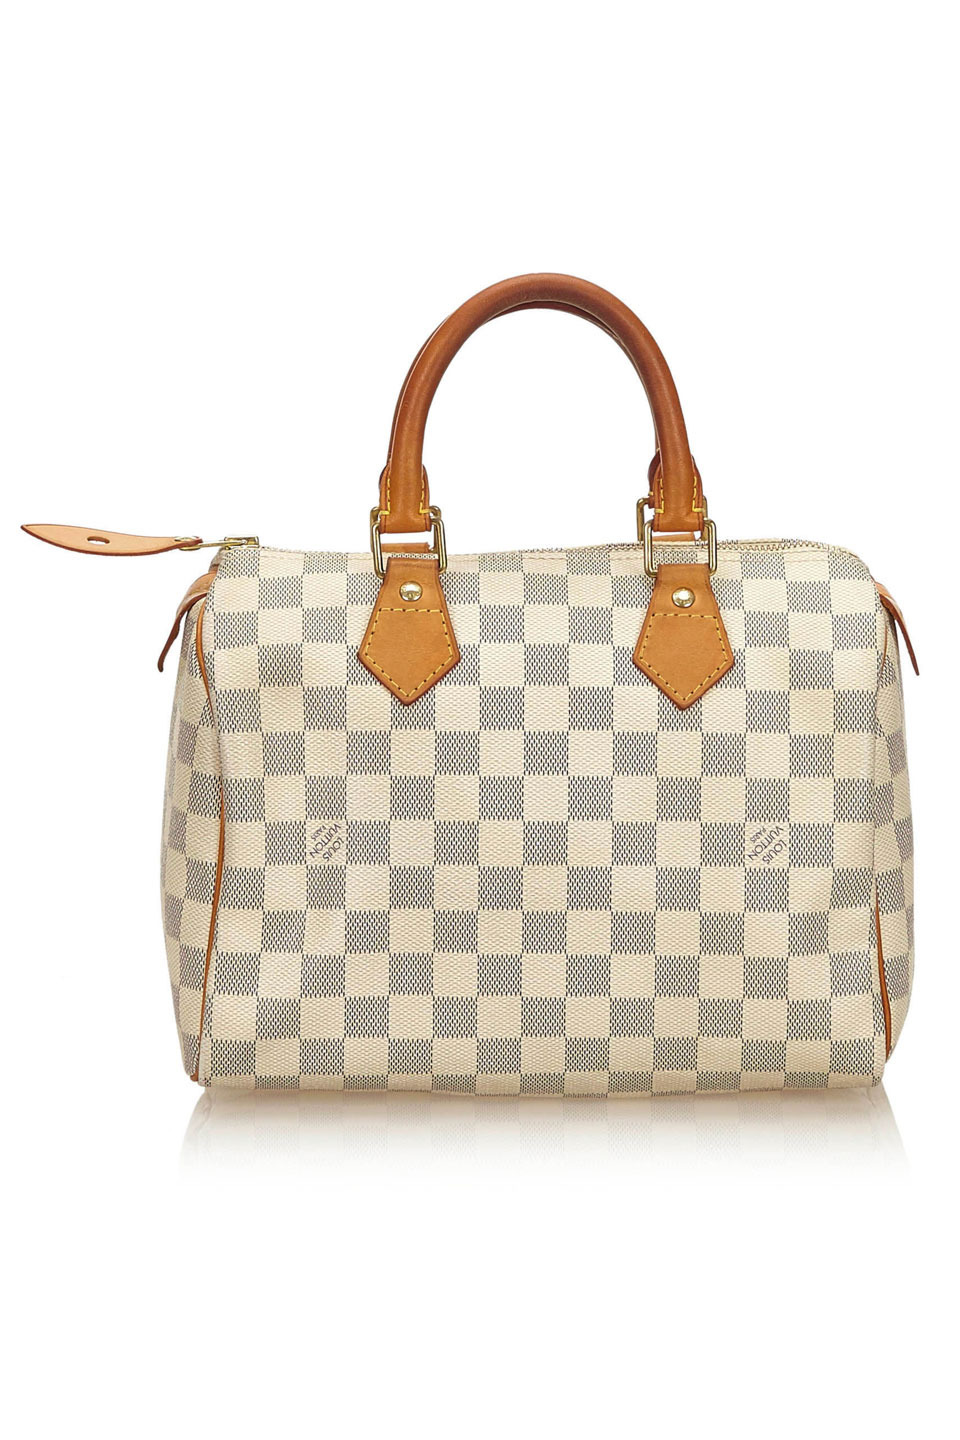 LOUIS VUITTON DAMIER AZUR SPEEDY 25 IN ...